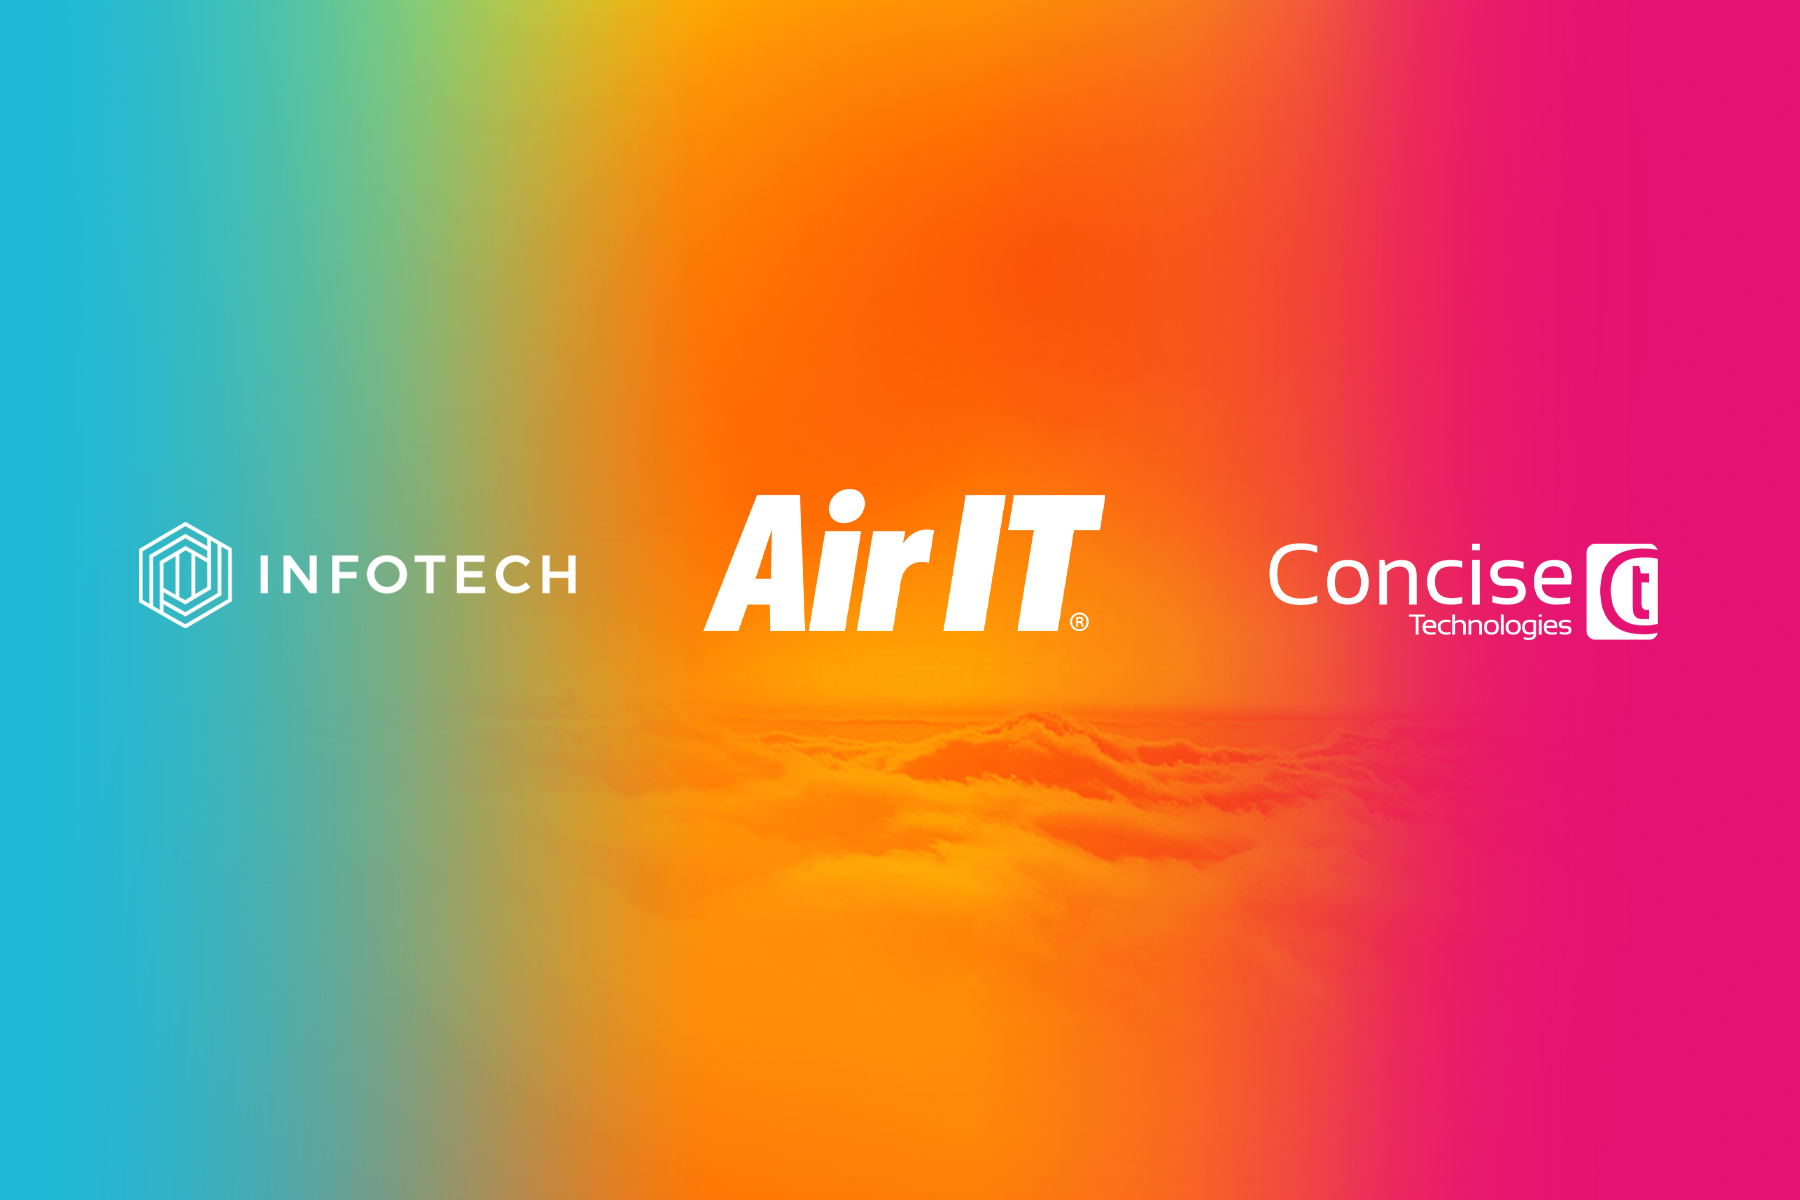 Air IT announces its third pair of acquisitions